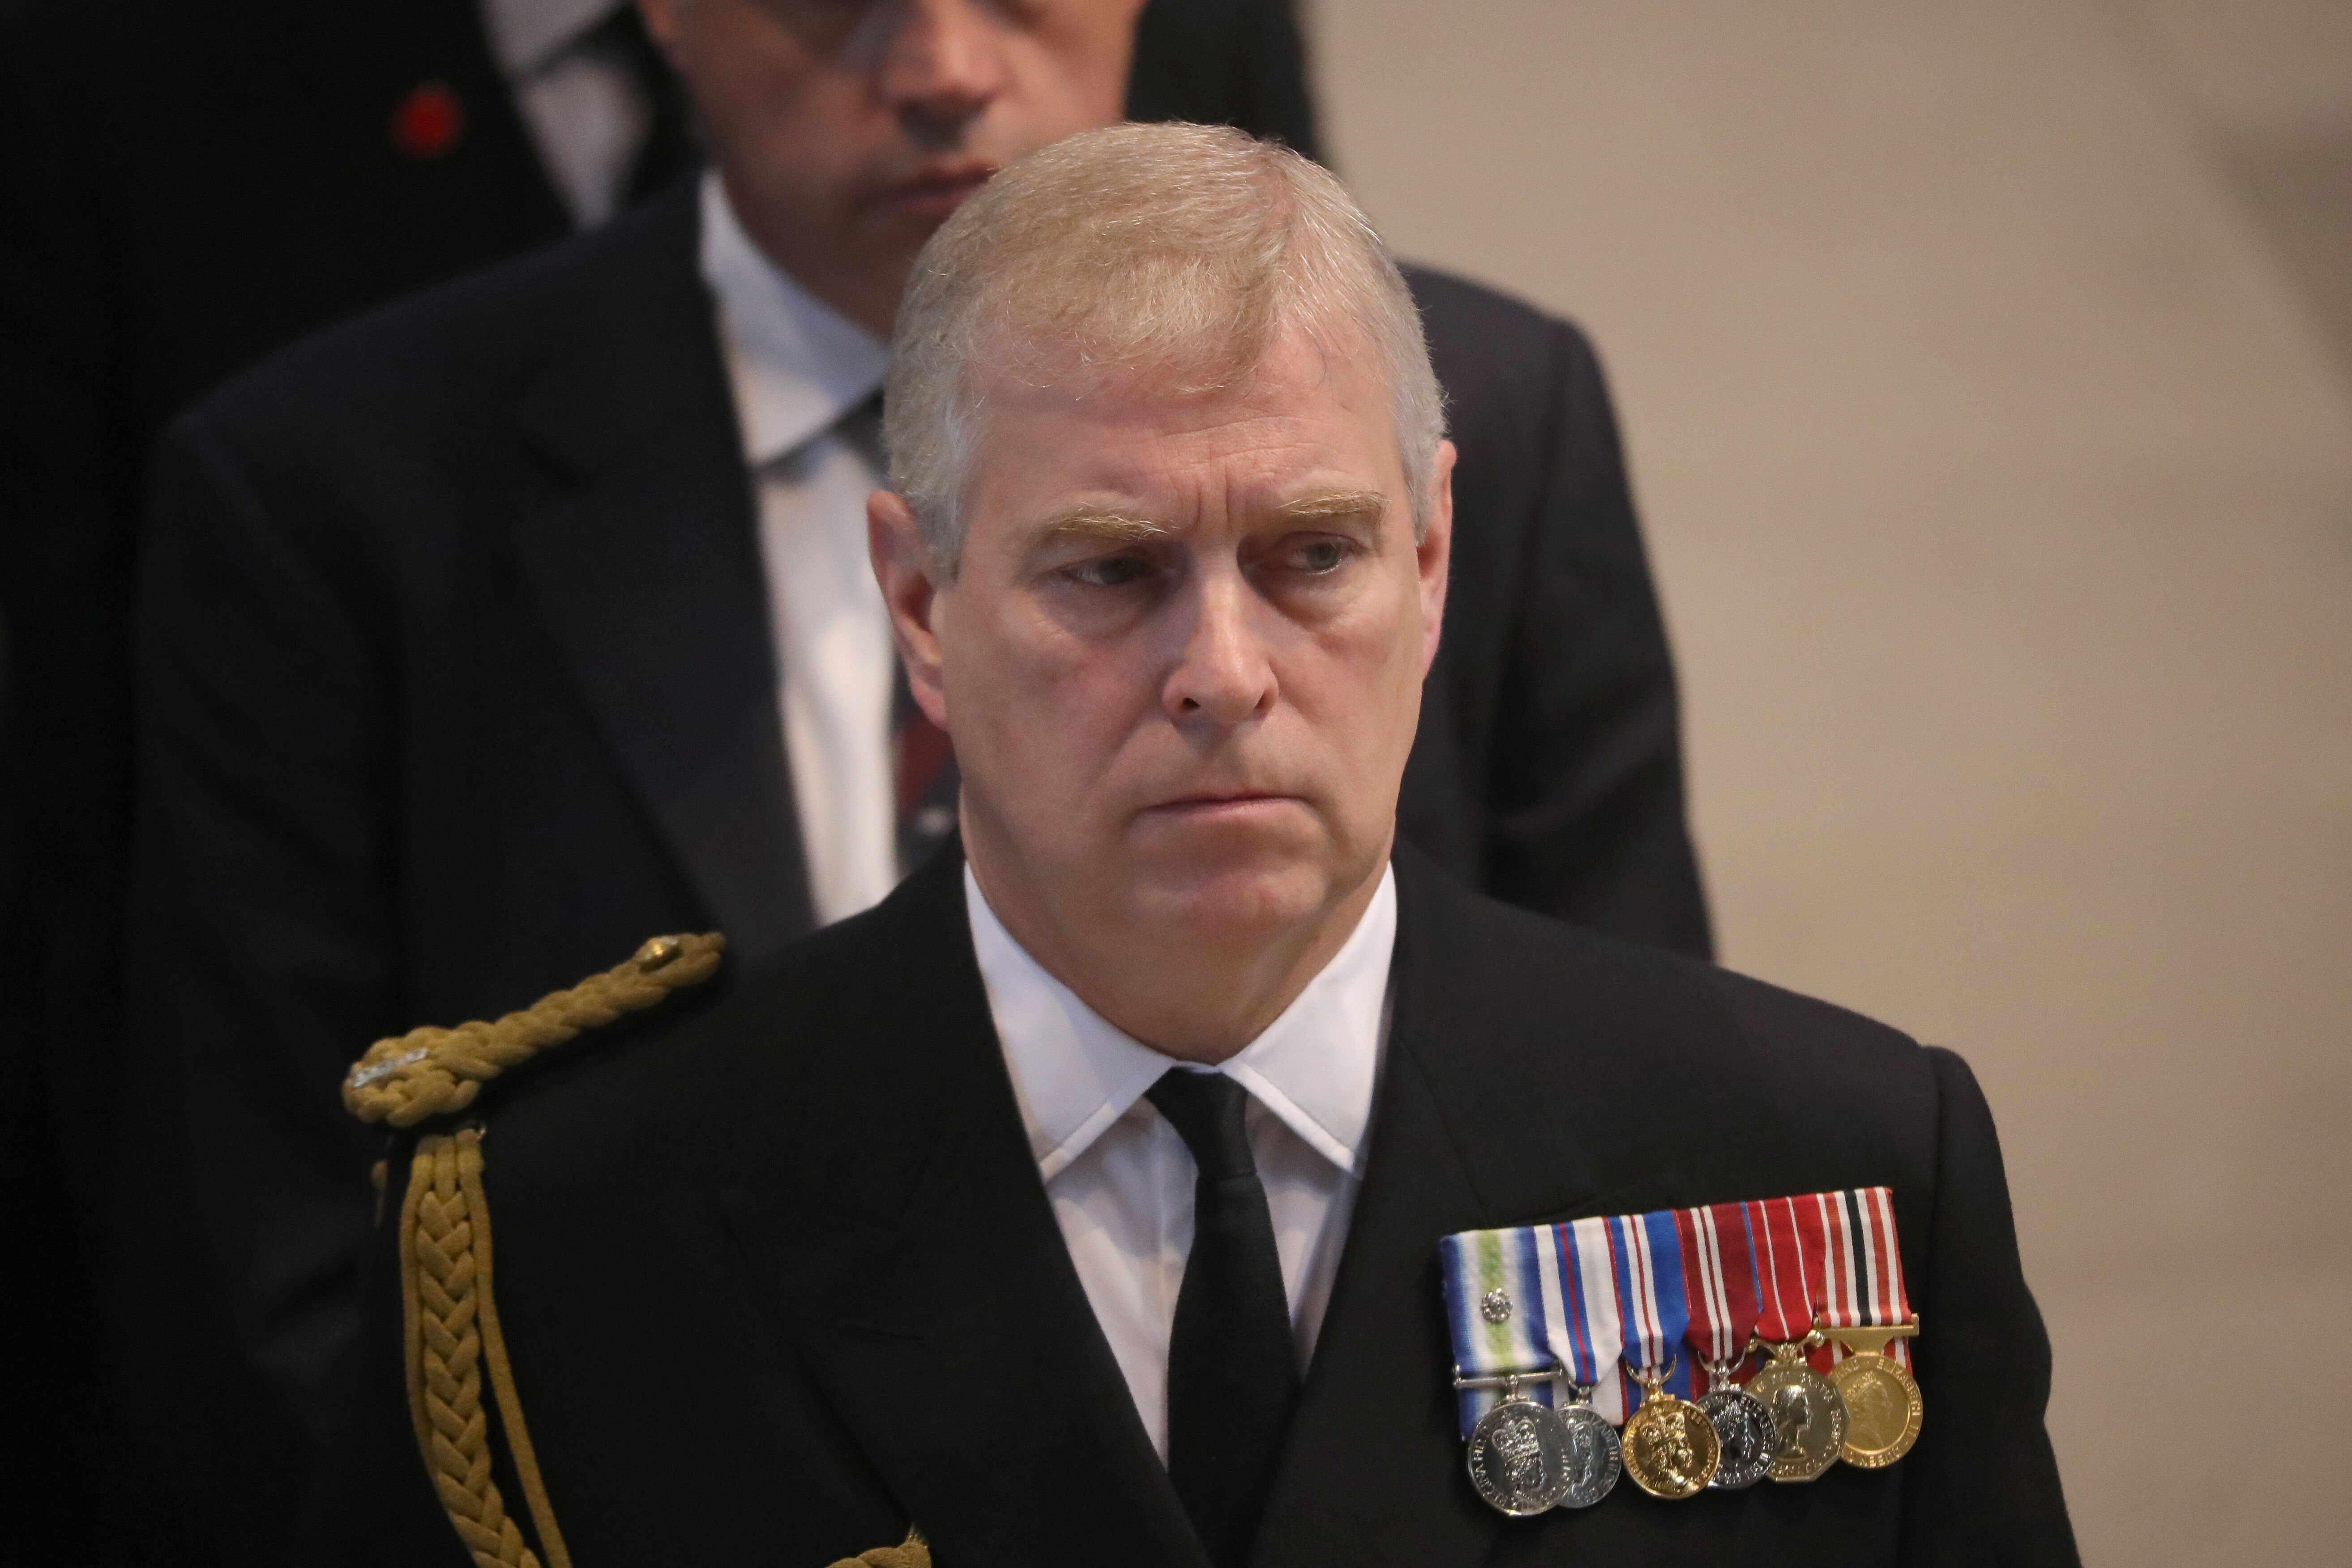 Prince Andrew/Photo:Getty Images